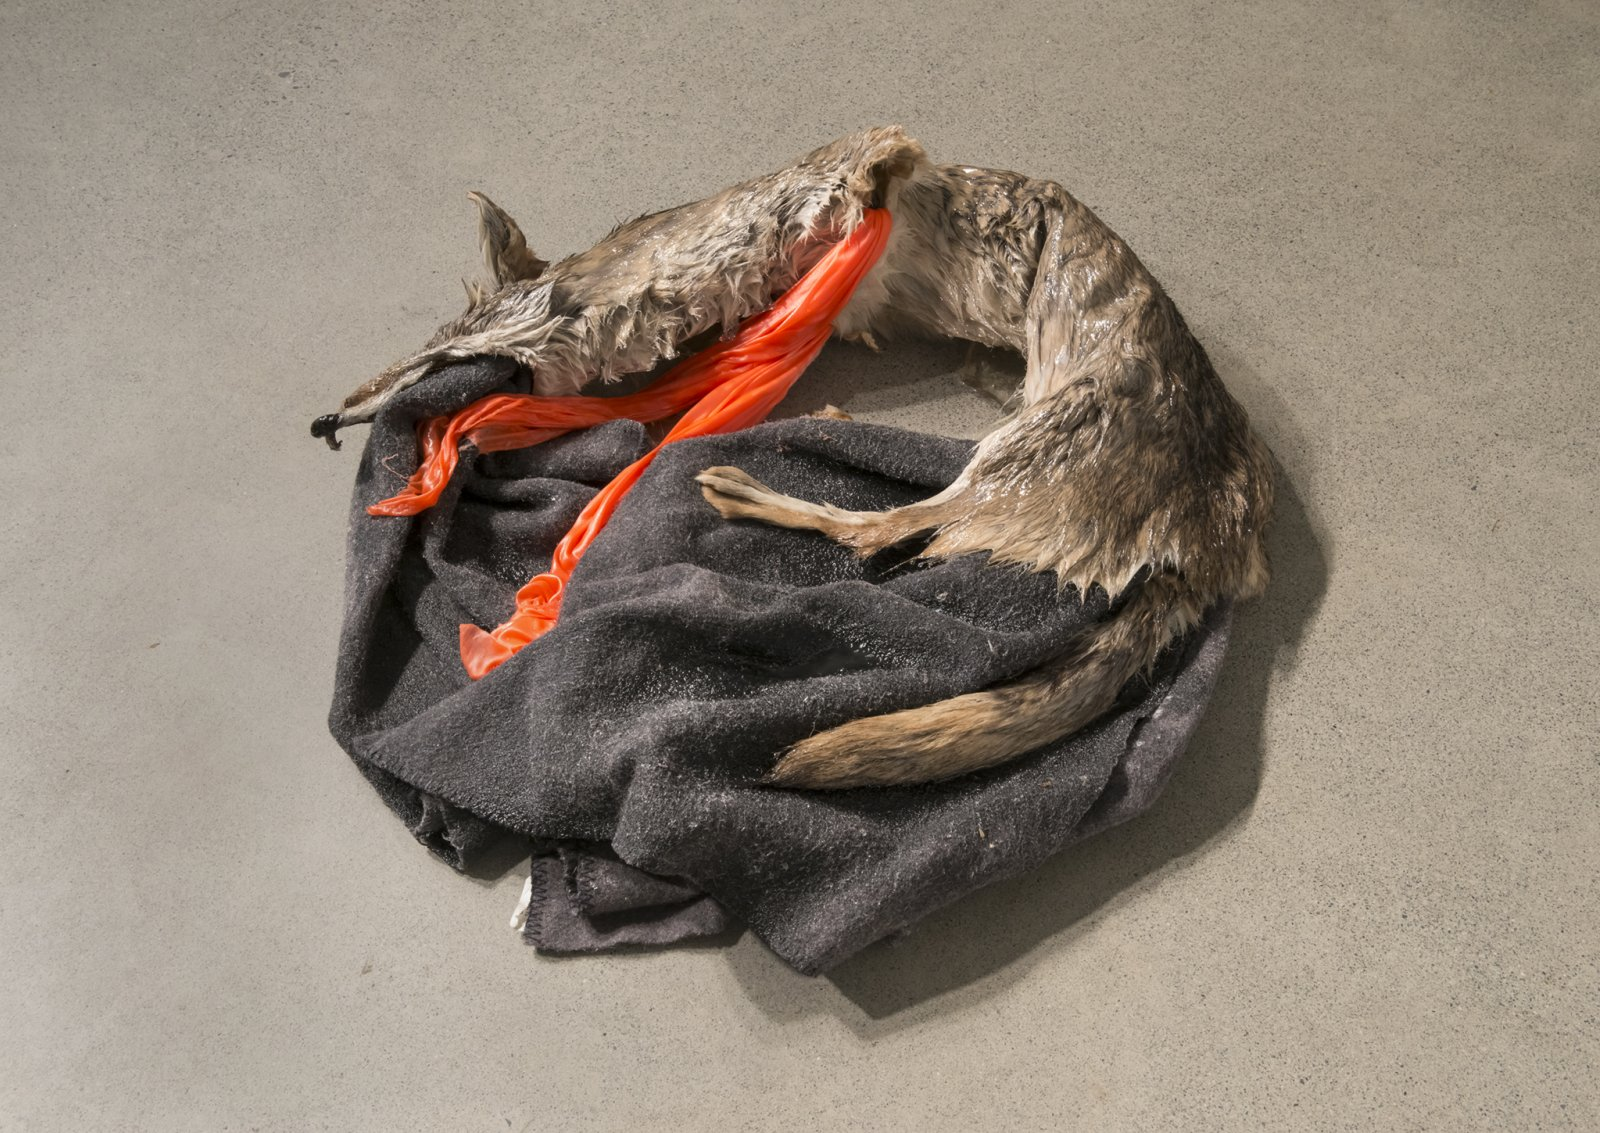 Duane Linklater, Torpor (detail), 2016, coyote fur, wool blanket, polyester cloth, resin, found picture, shoelace, brick, dimensions variable